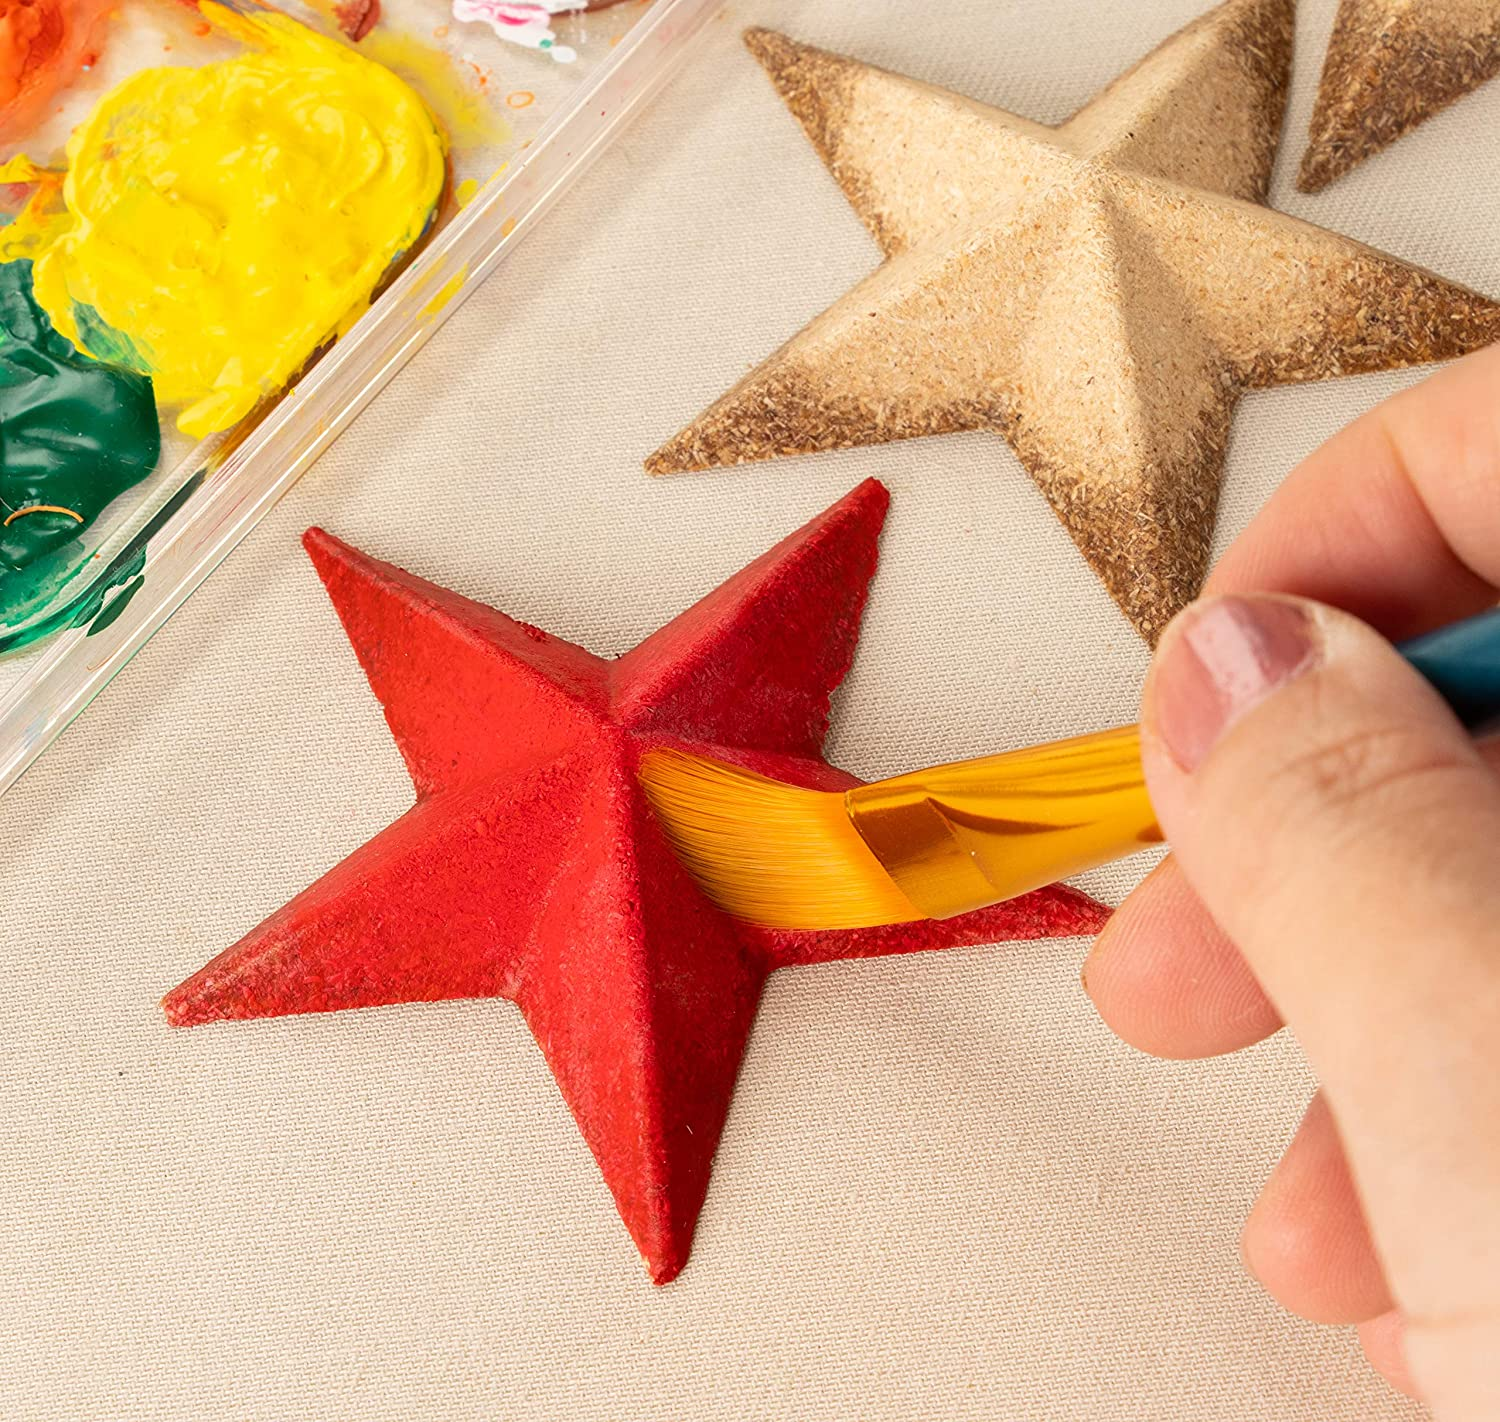 Party 4.5 x 4.5 x 1 Inches Wood Cutouts 12-Pack Flat 3D Wood Stars Star Shaped Wood Pieces Home Decoration Christmas Tree for Craft DIY Classroom Projects Unfinished Wood Half 3D Stars